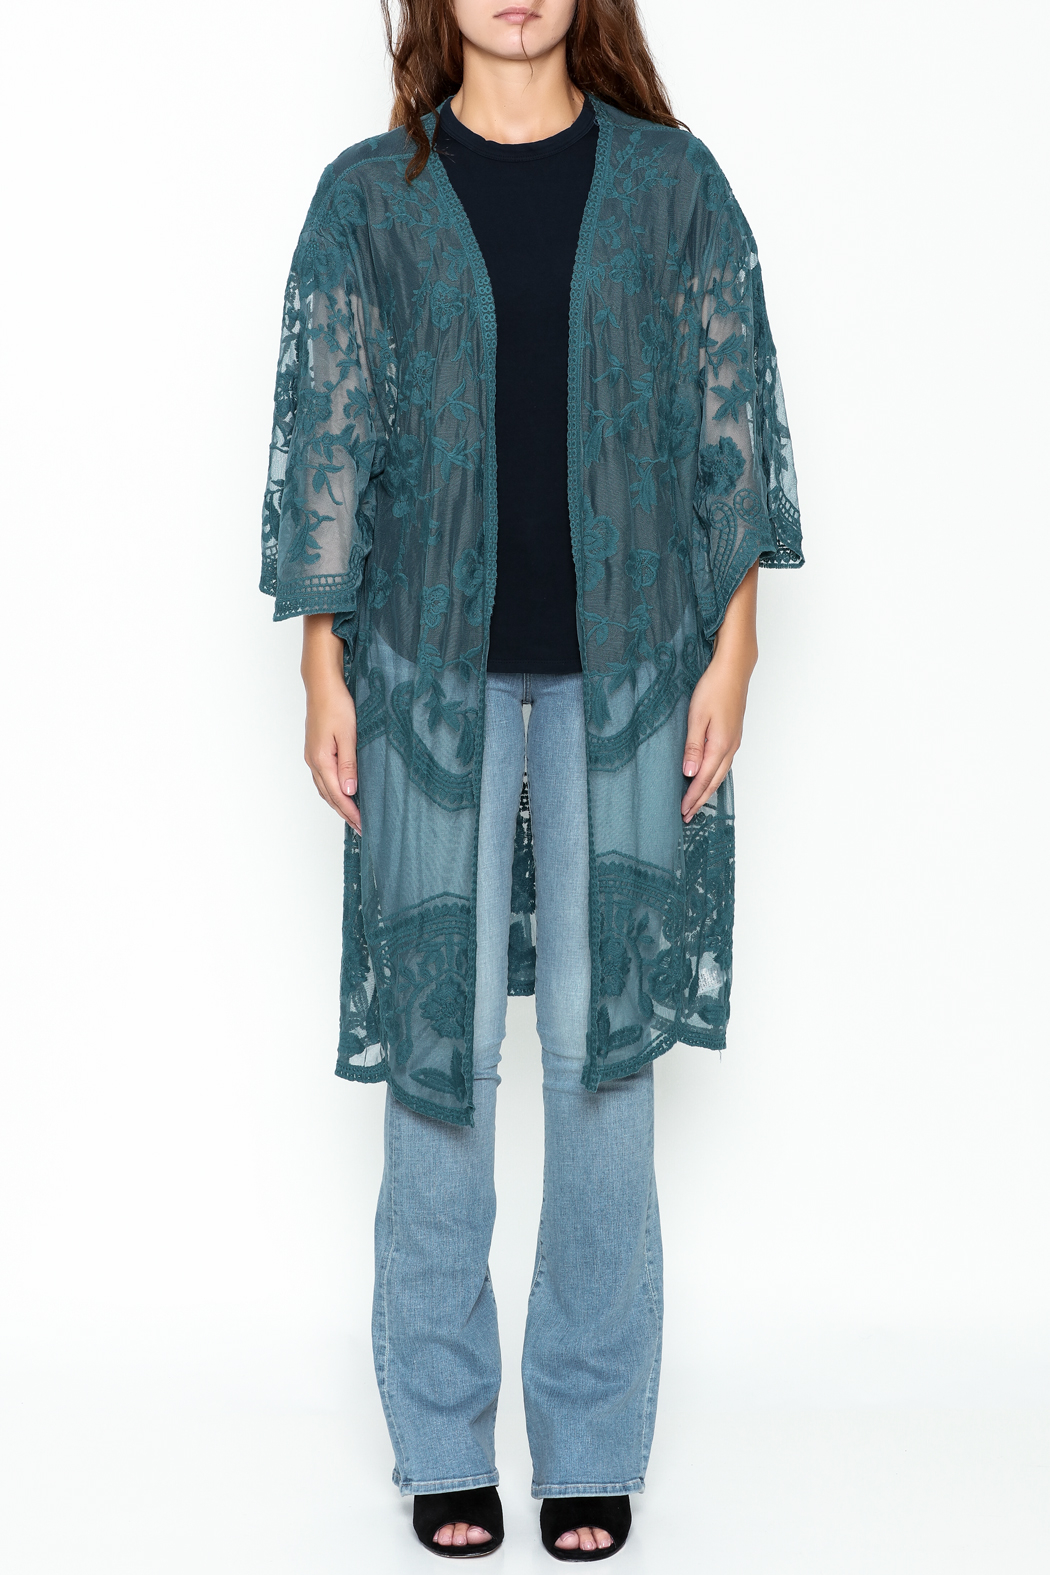 She + Sky Chloe Lace Duster - Front Full Image